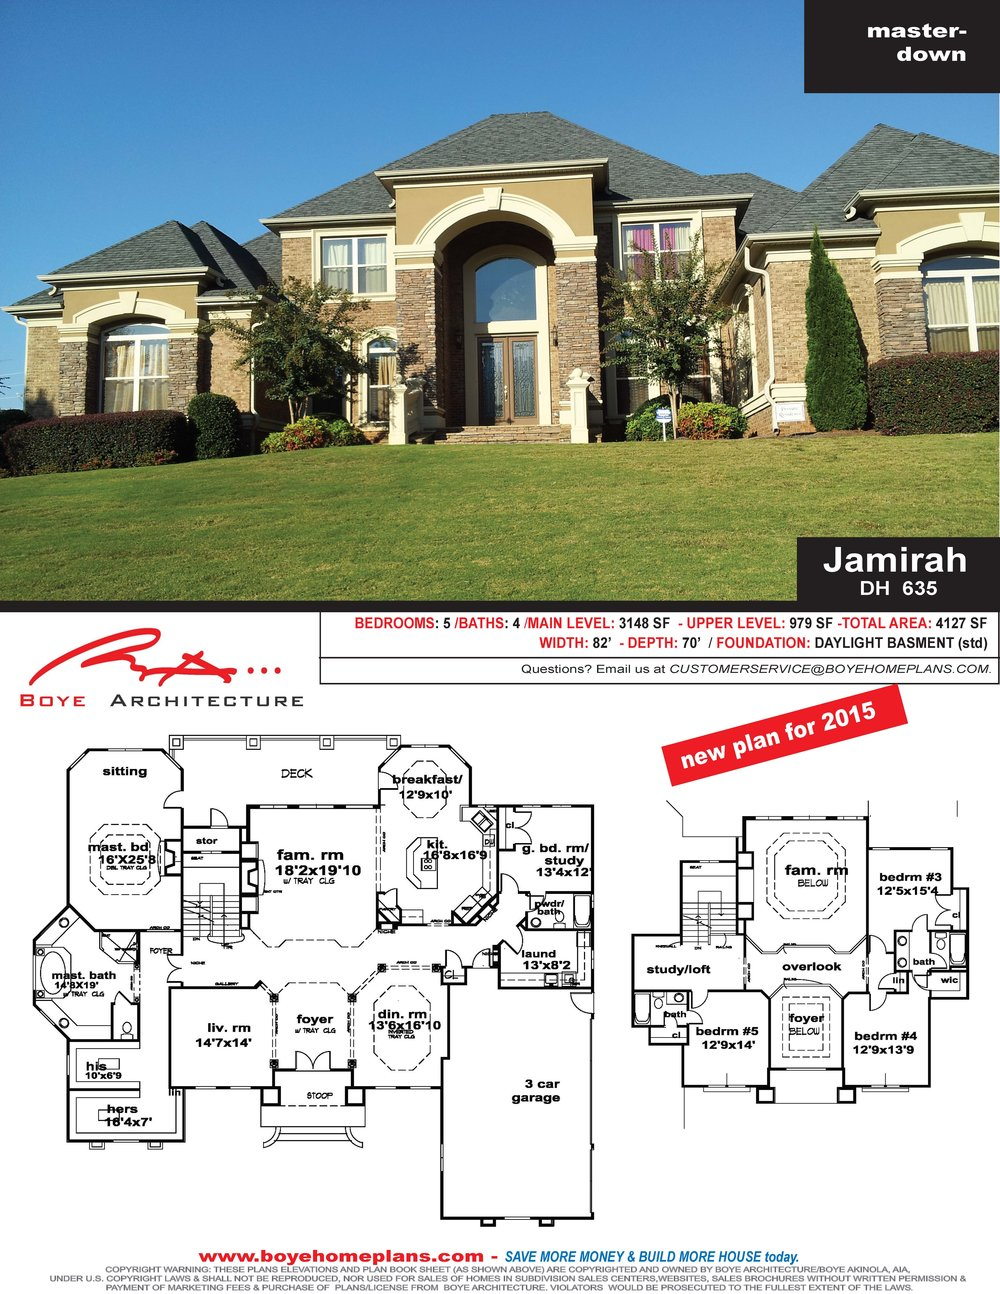 JAMIRAH PLAN-DH635-with pic-112914.jpg